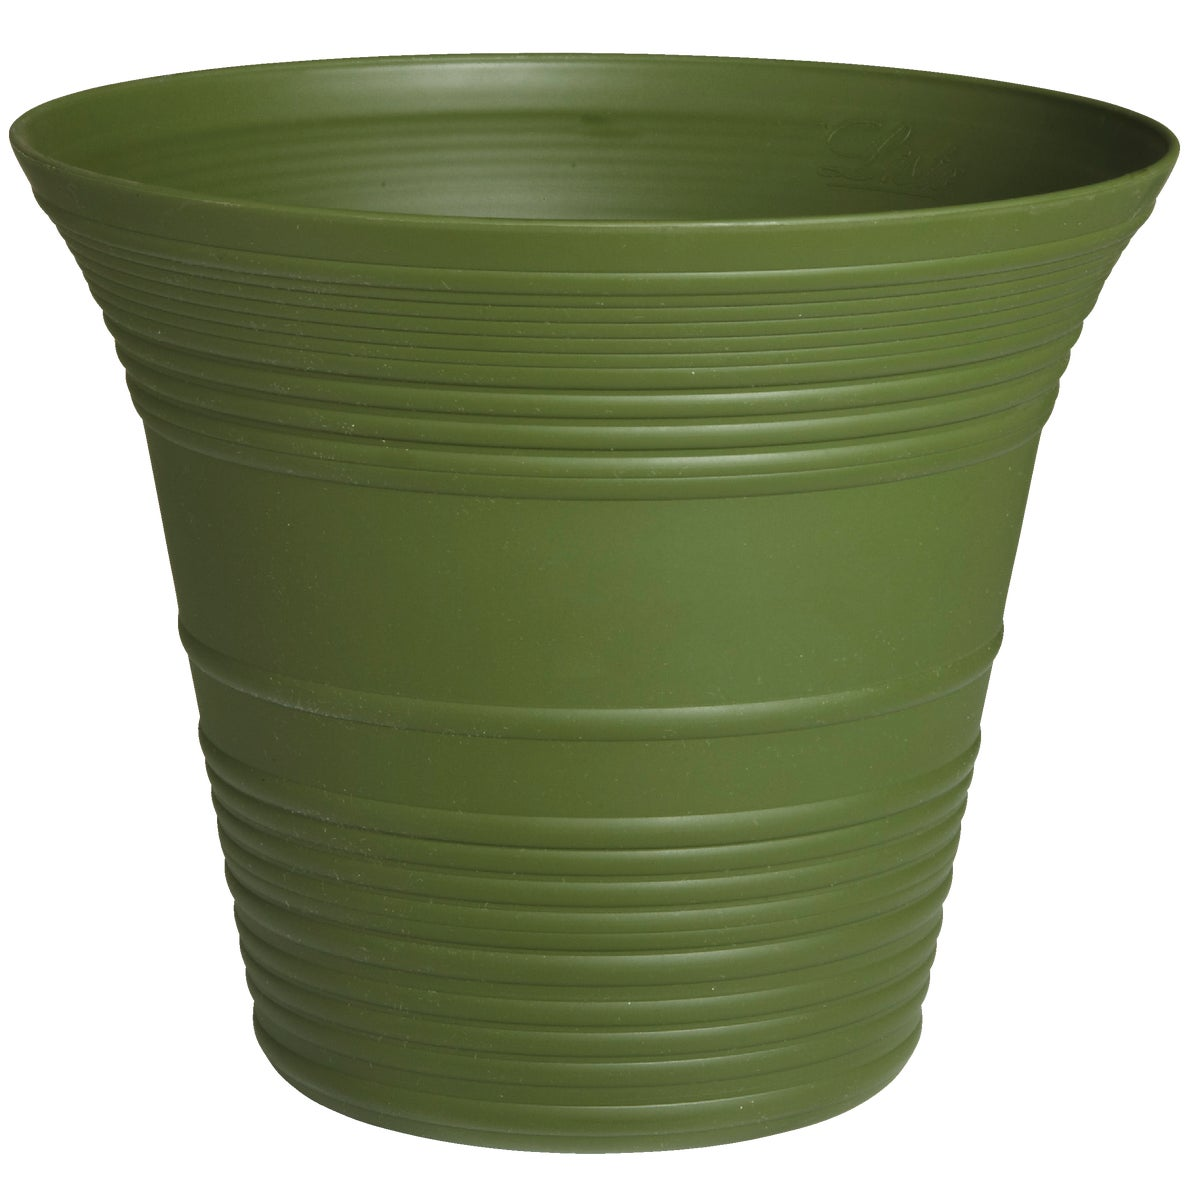 "12"" GREEN SEDONA PLNTER - SEA12001BB3 by Myers Industries Inc"